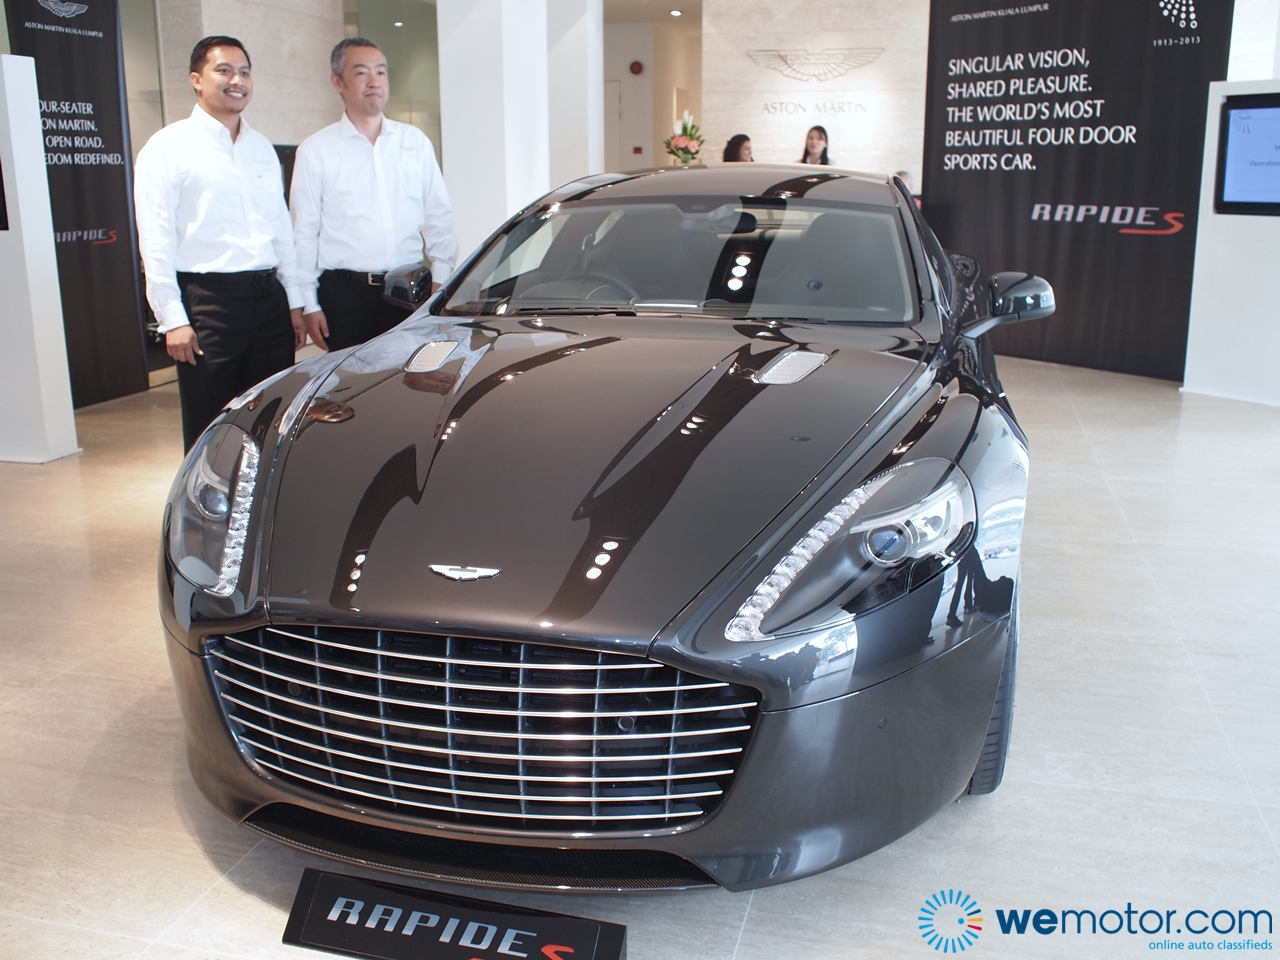 2014 Aston Martin Rapide S Launched Price Starts From Rm1 898 000 Wemotor Com